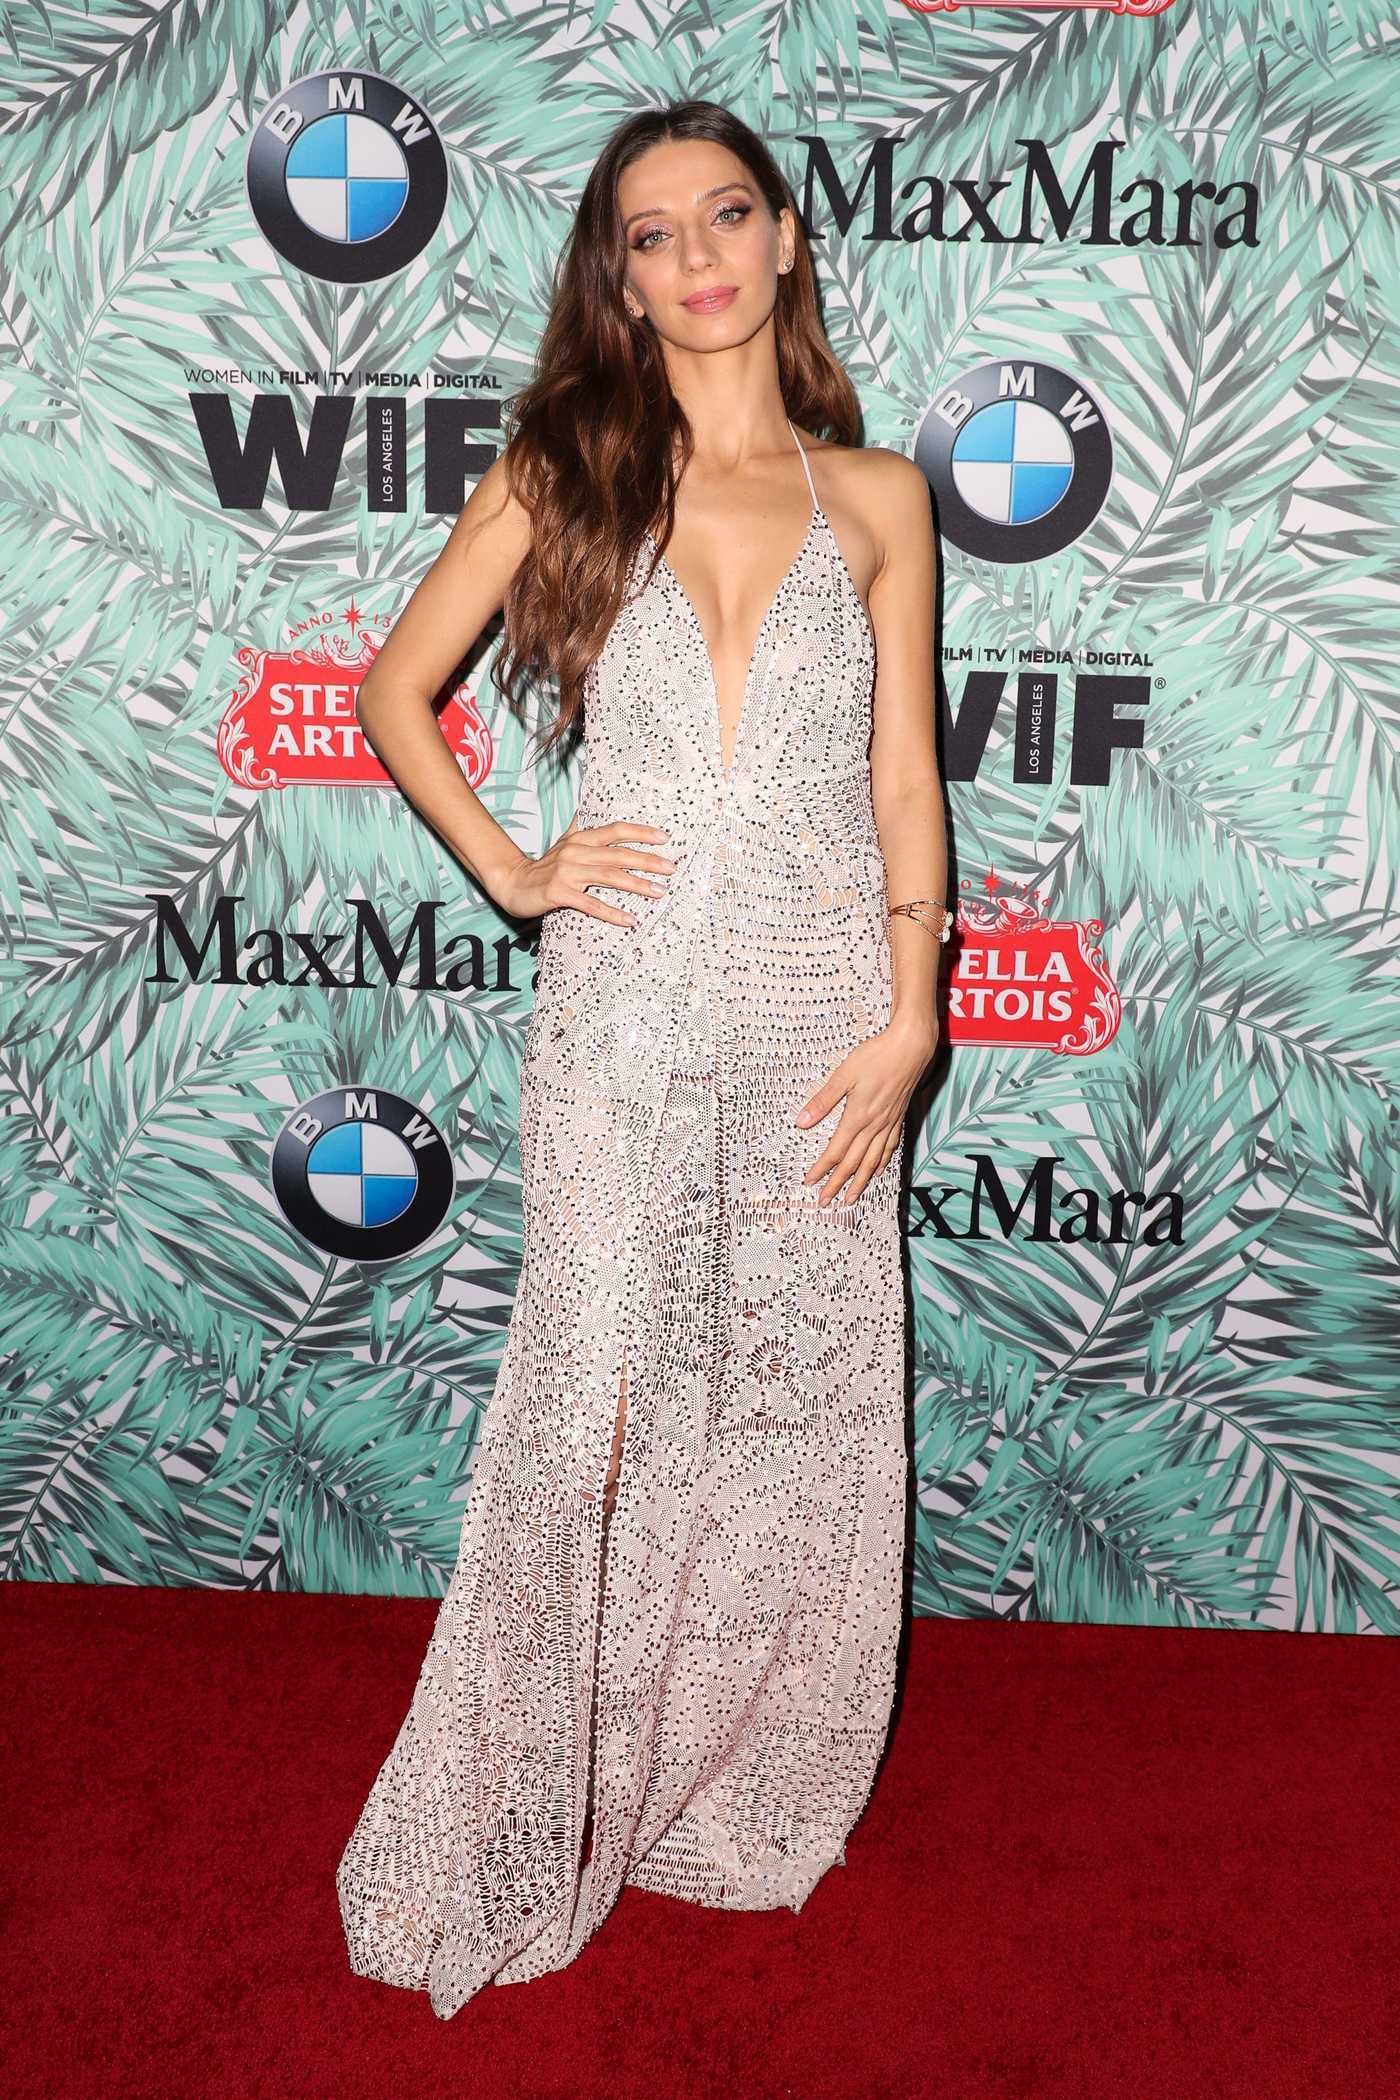 Angela Sarafyan at the Woman in Film Cocktail Party in Los Angeles 02/24/2017